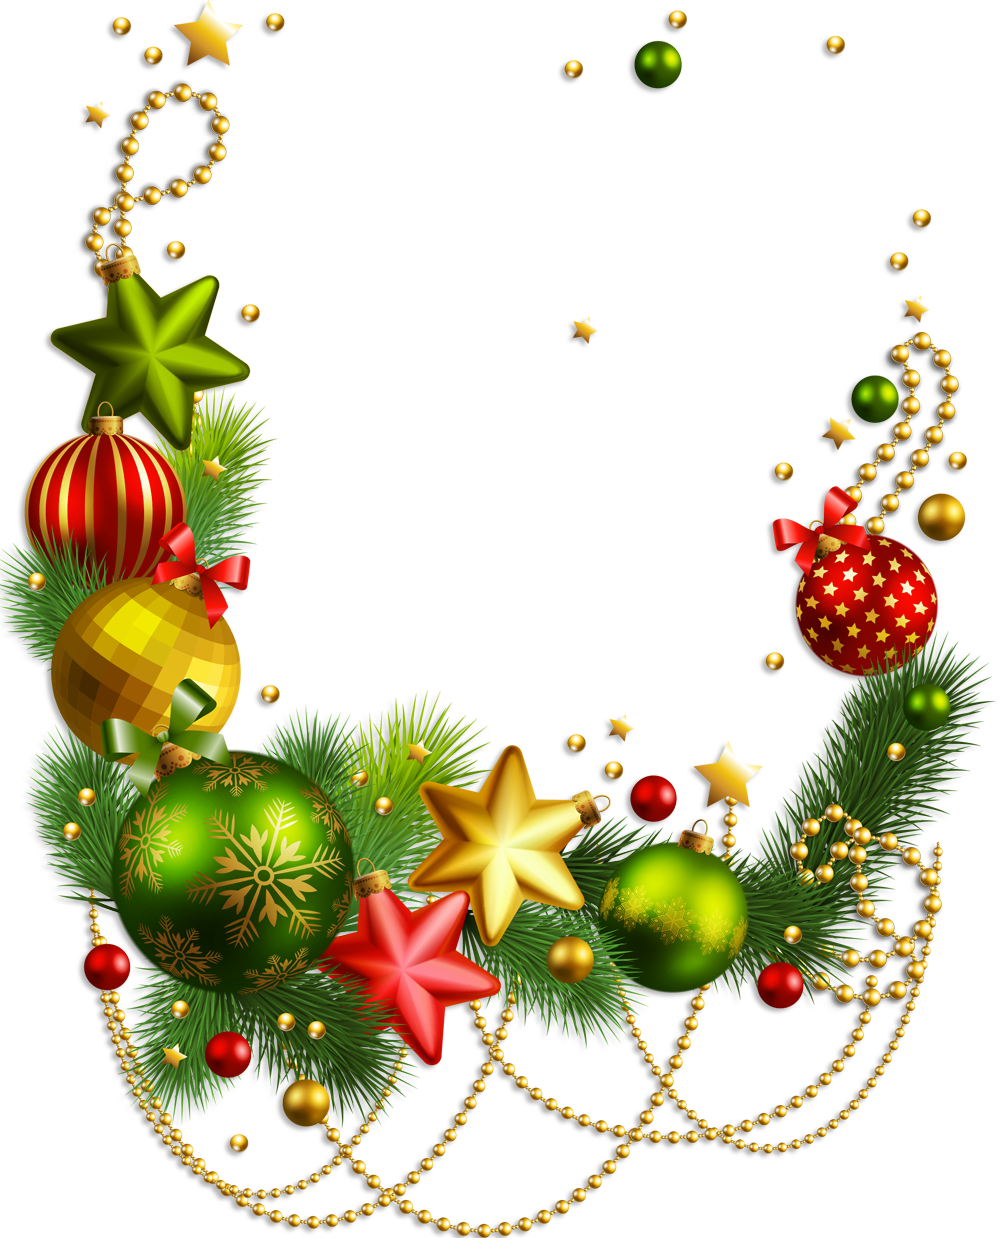 Christmas Decorations Png.Download Christmas Ornaments Transparent Hq Png Image